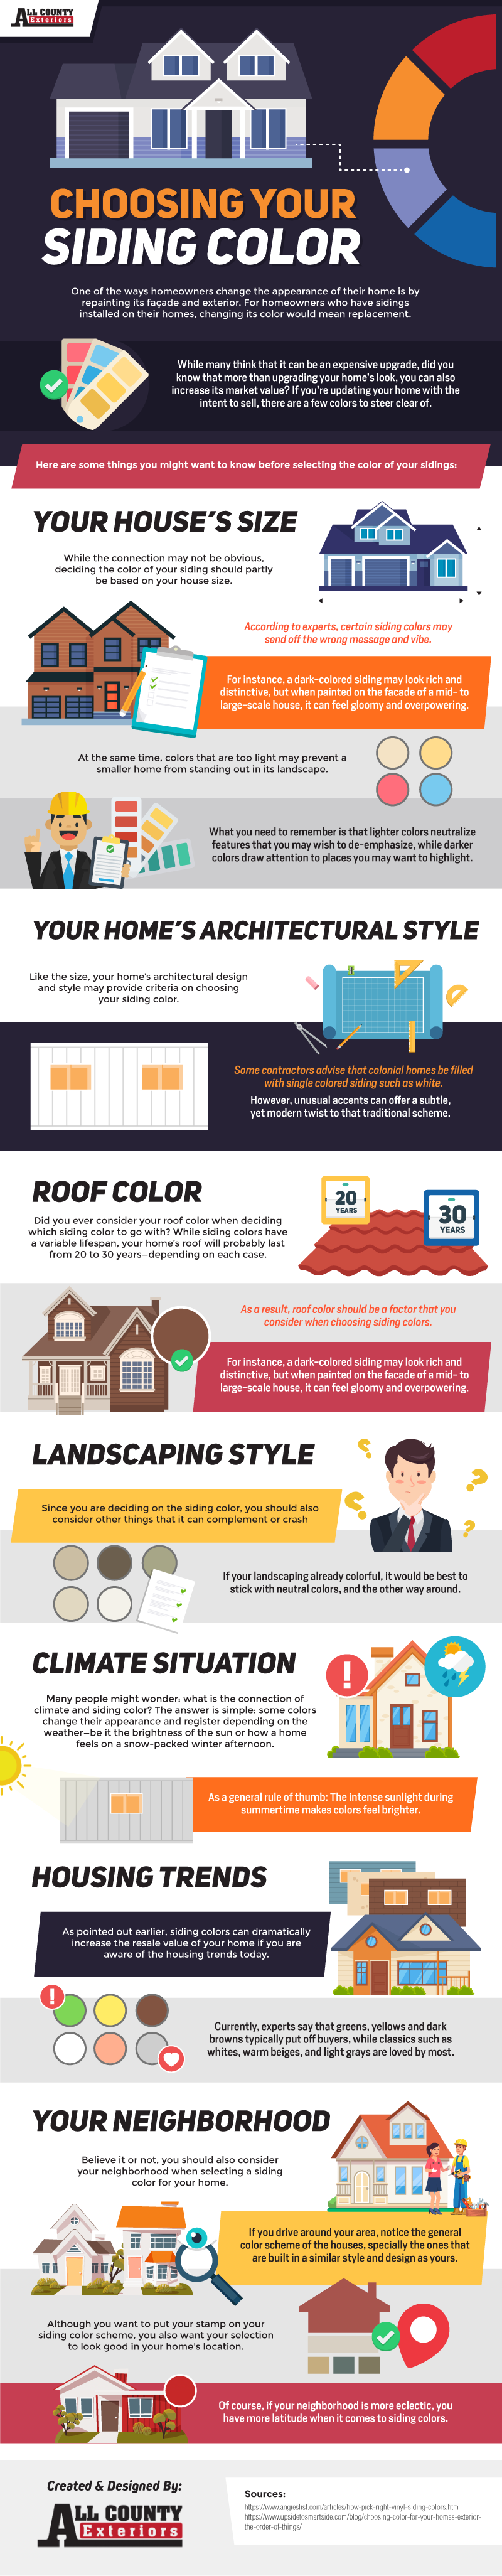 """<img class=""""aligncenter wp-image-1679 size-full"""" src=""""https://allcountyexteriors.com/wp-content/uploads/2018/04/Choosing-Your-Siding-Color-01.png"""" alt="""""""" width=""""800"""" height=""""4104"""" />"""